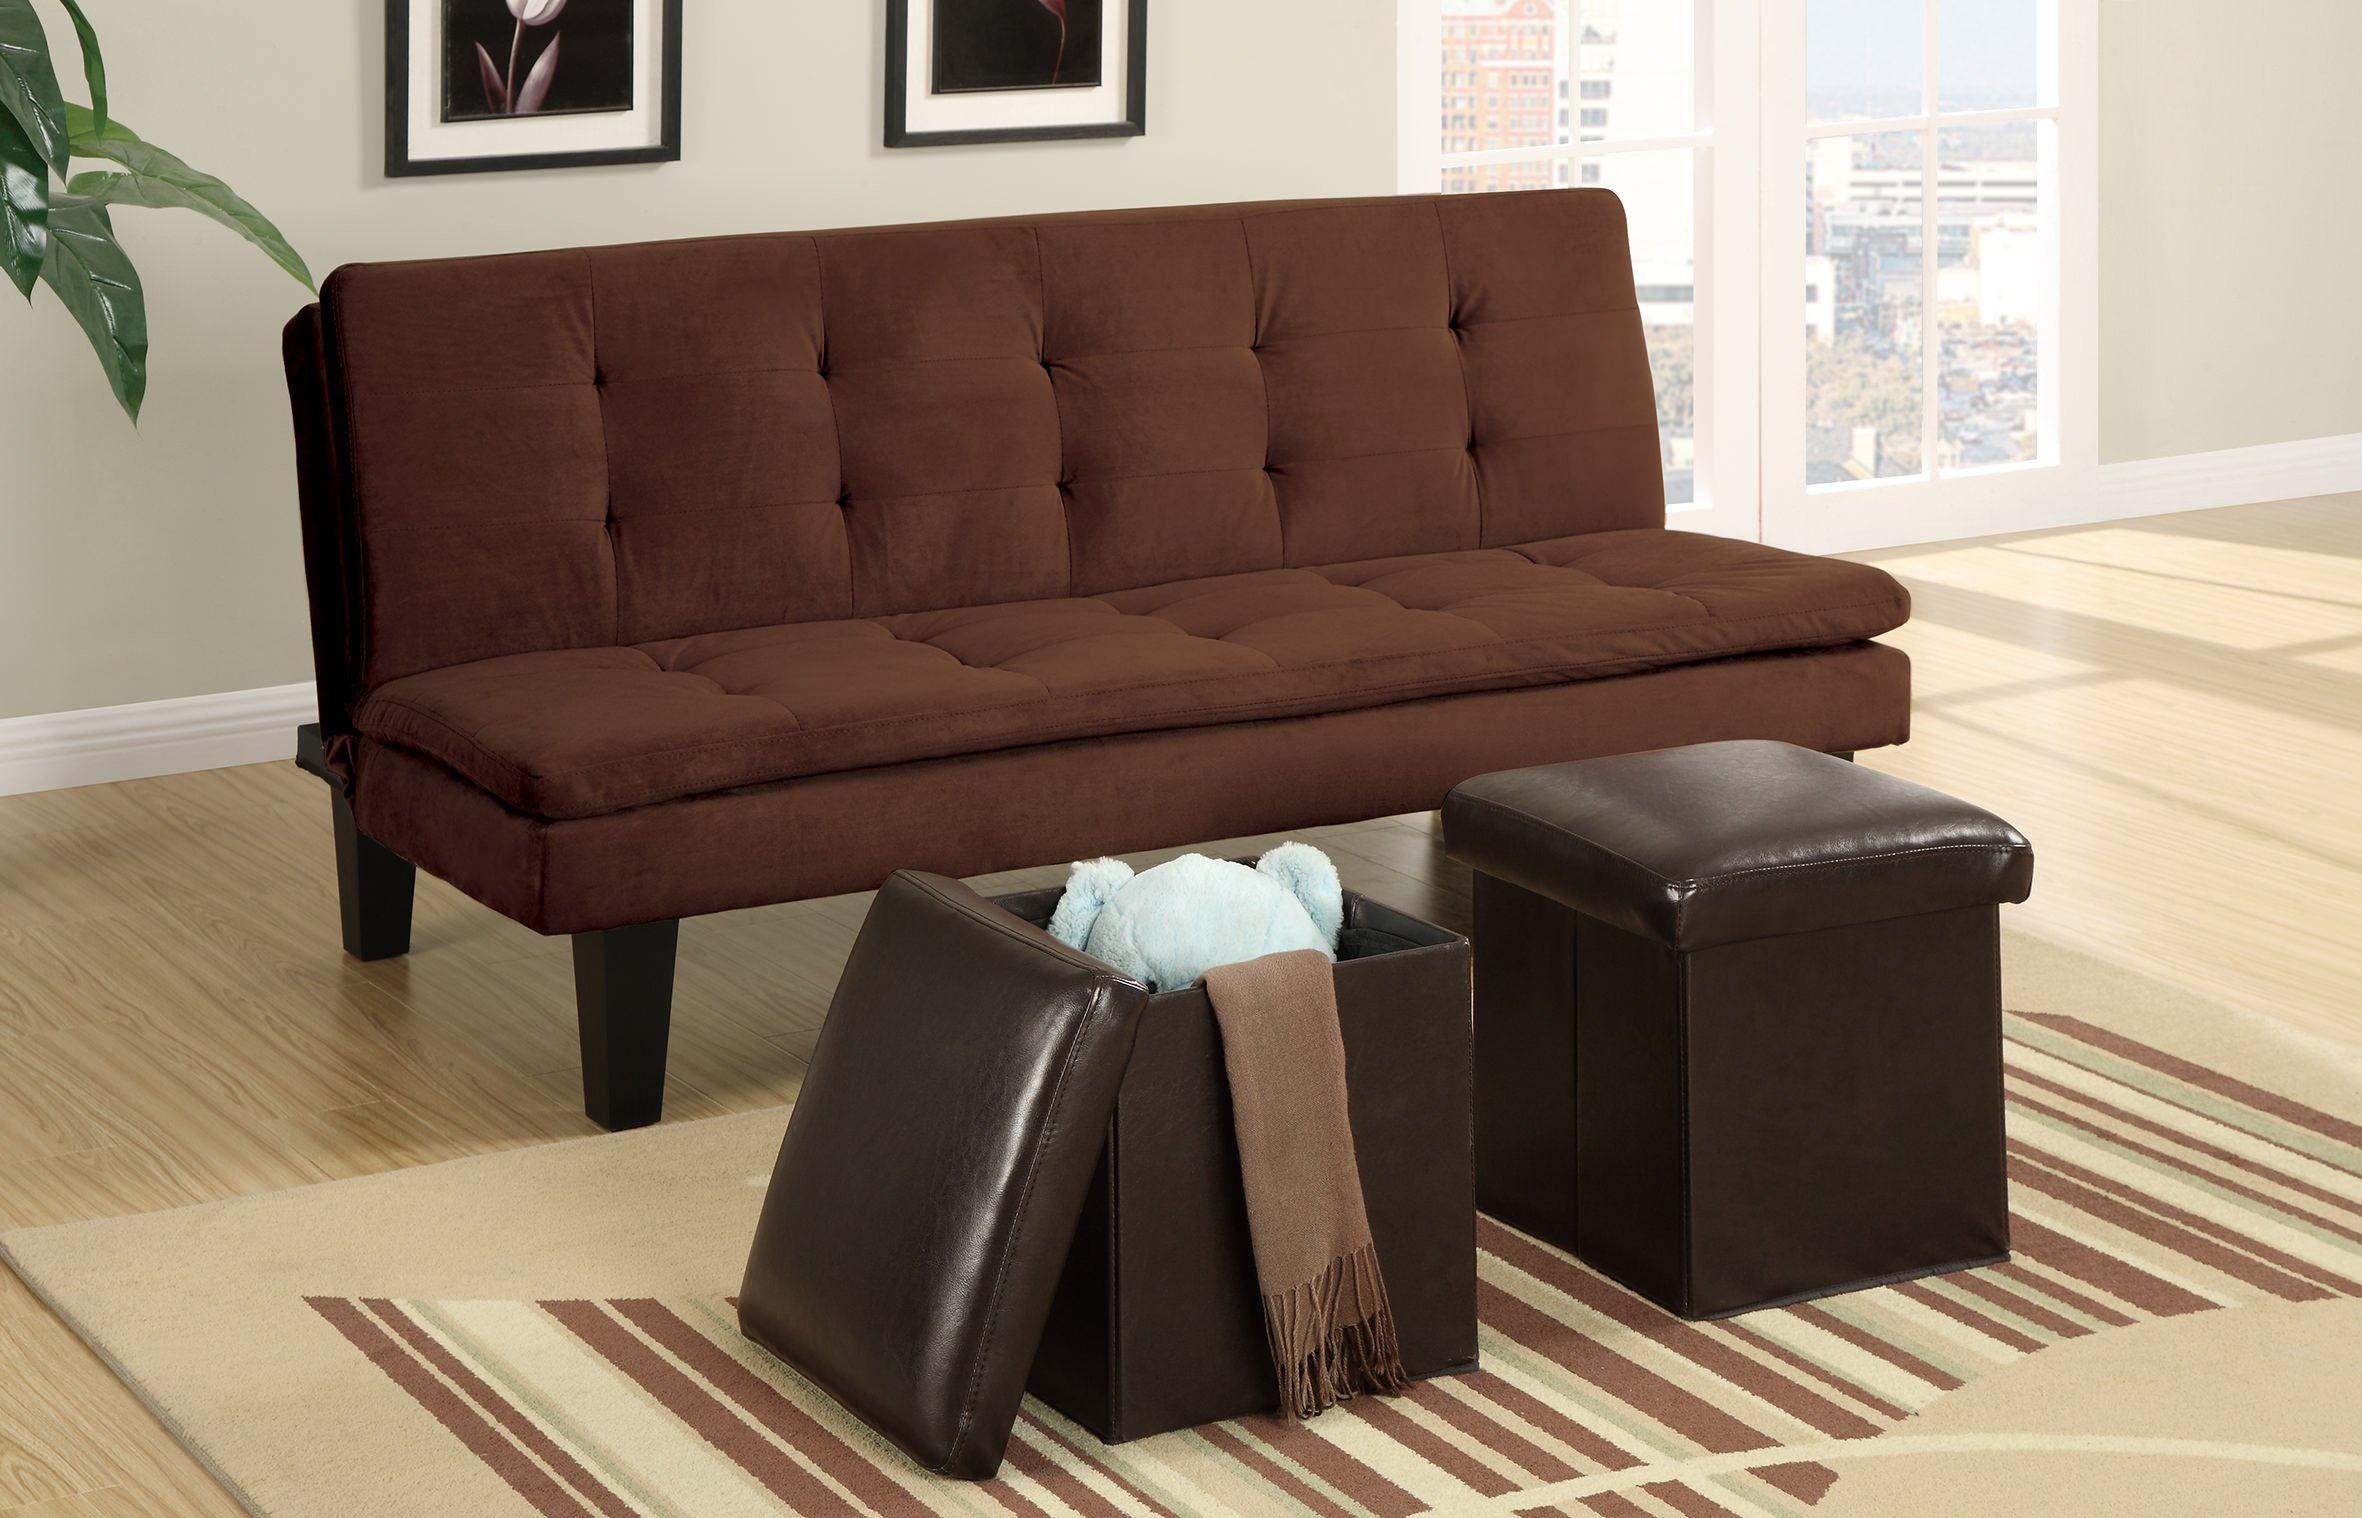 F7196 Chocolate Convertible Sofa Bed with 2 Pcs Ottoman by Poundex